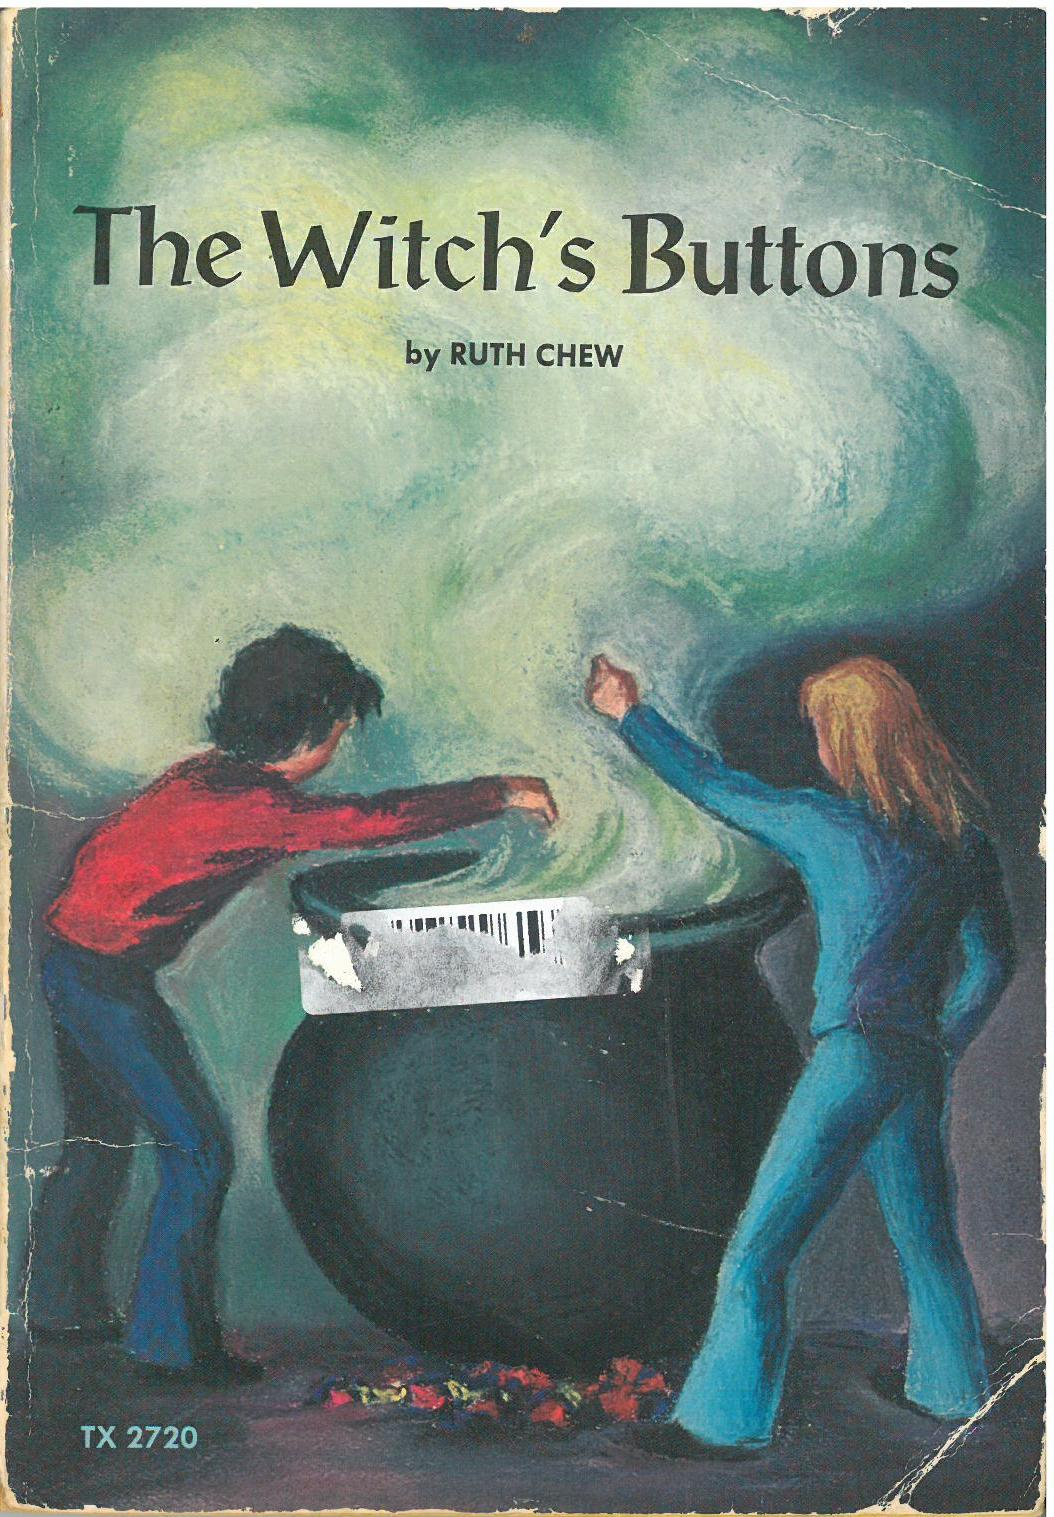 Somehow, My Well Loved Scholastic Book Services Childhood Copy Of The  Witch's Buttons Has Been Lost, And I Was Forced To Buy Another One